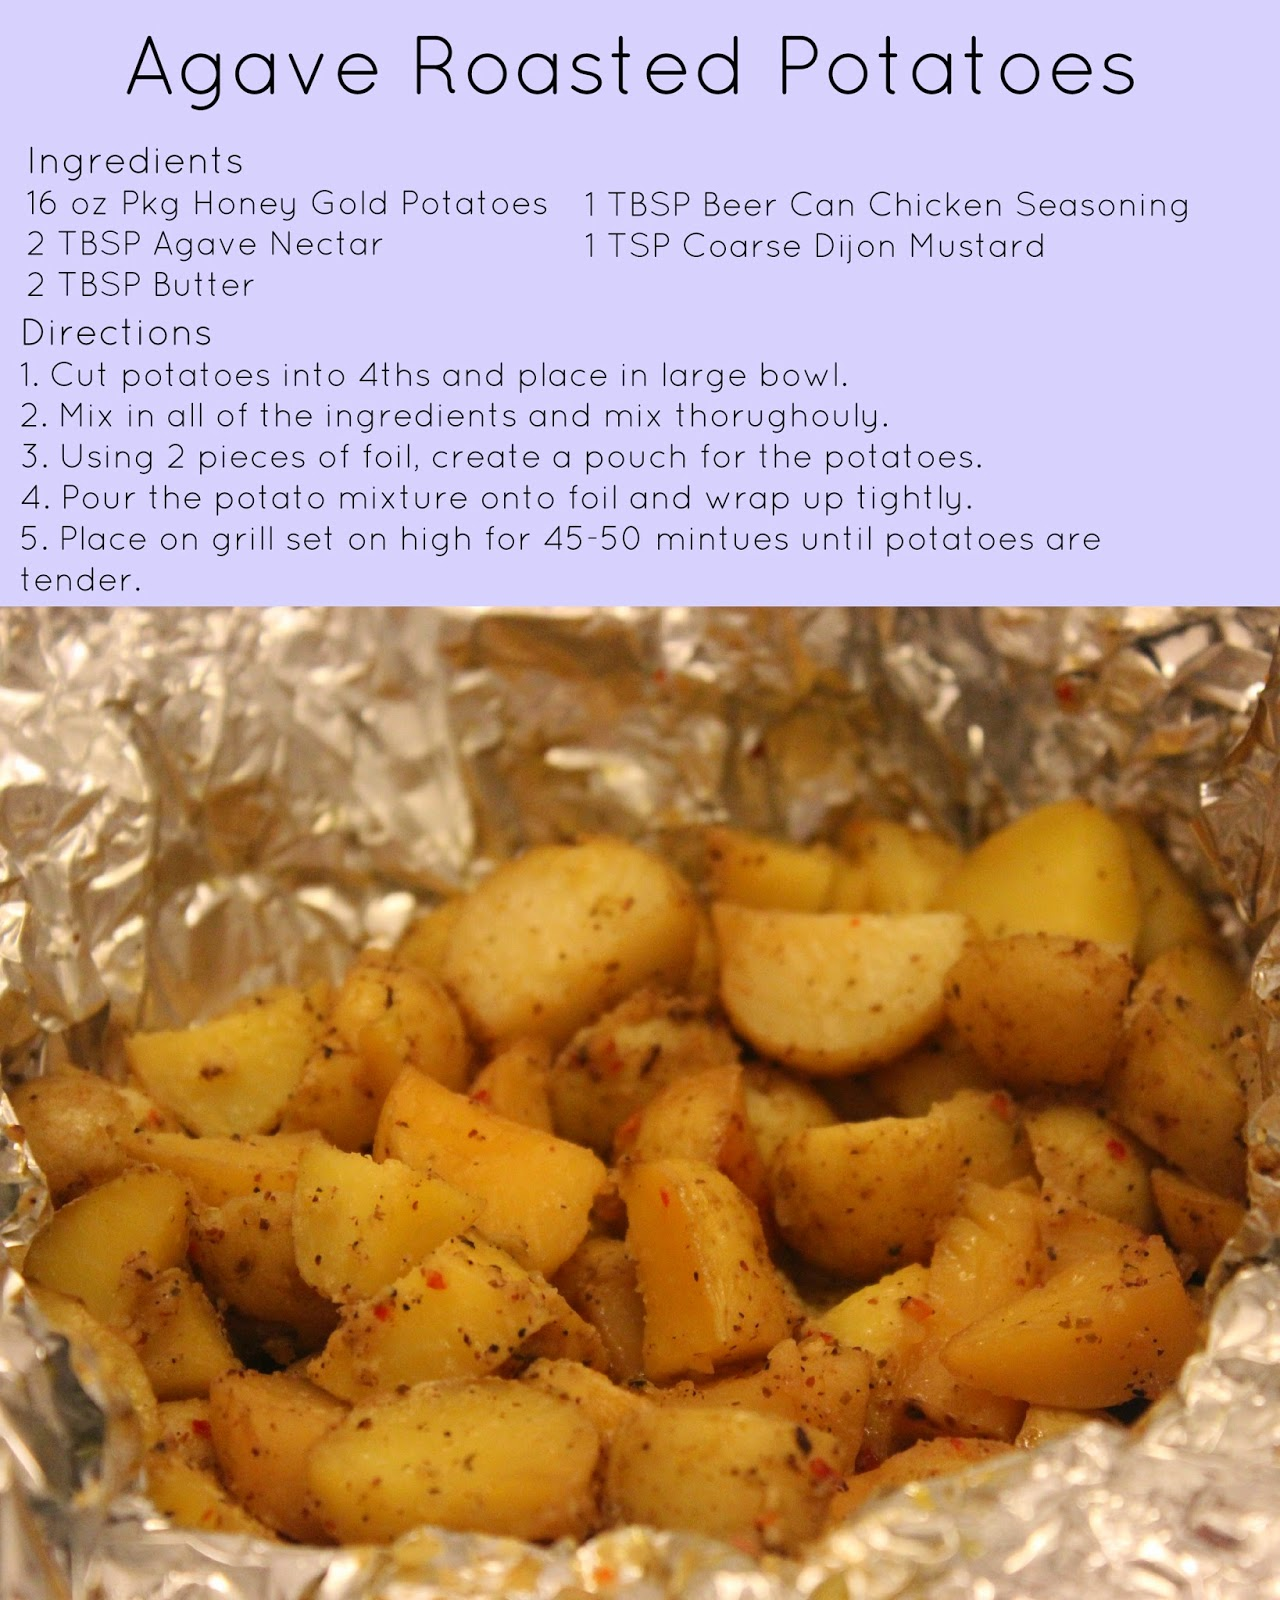 tasty tuesday, recipes, potatoes, potato recipe, onion recipe, adobo, grilling, summer time, summer grilling, grill recipes, healthy food